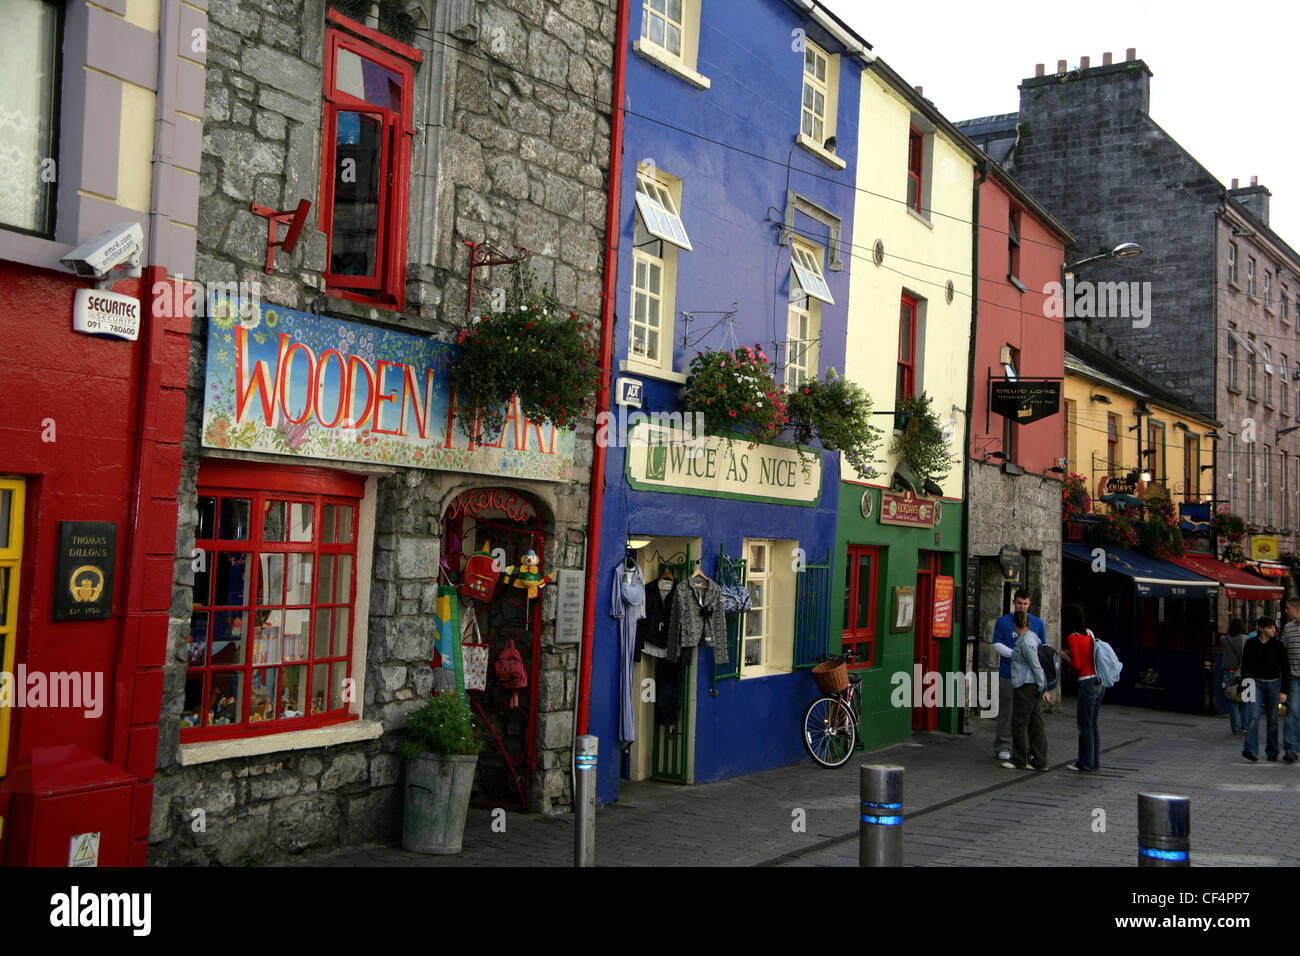 1580 shop fronts in Quay Street, Galway. - Stock Image